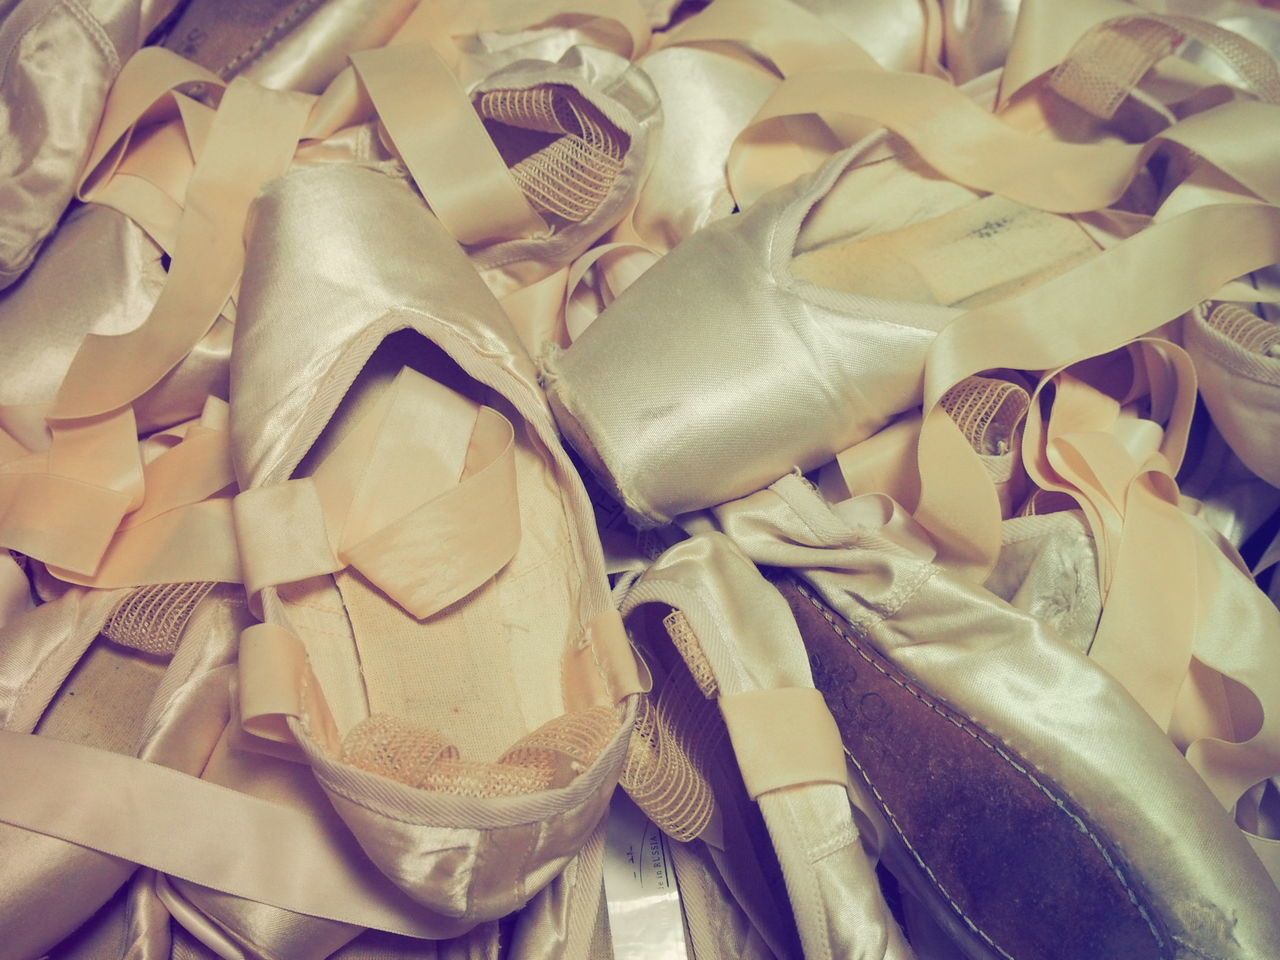 Indoors  Full Frame Collection Creativity Close-up Ballett Ballet Shoes Point Shoes Almaz R CLASS Toe Shoes Shoe Fashionable Large Group Of Objects